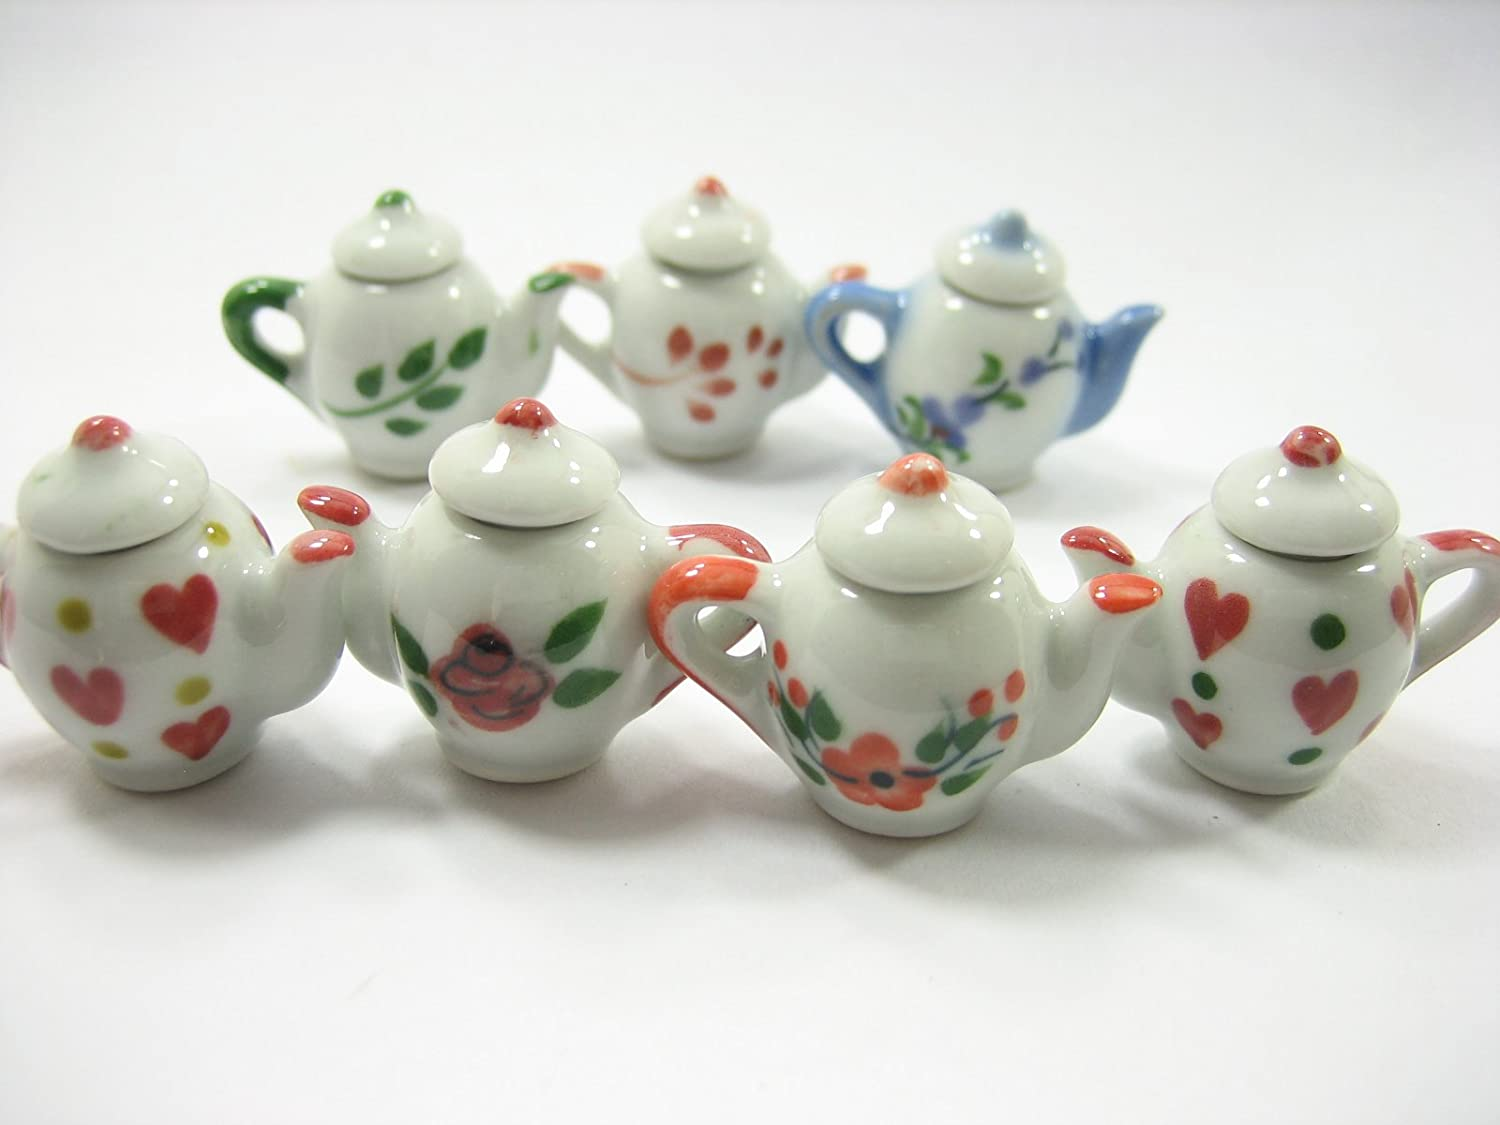 Set 7 Mixed Coffee Pot Teapot Assorted Paint Dollhouse Miniatures Ceramic 13239